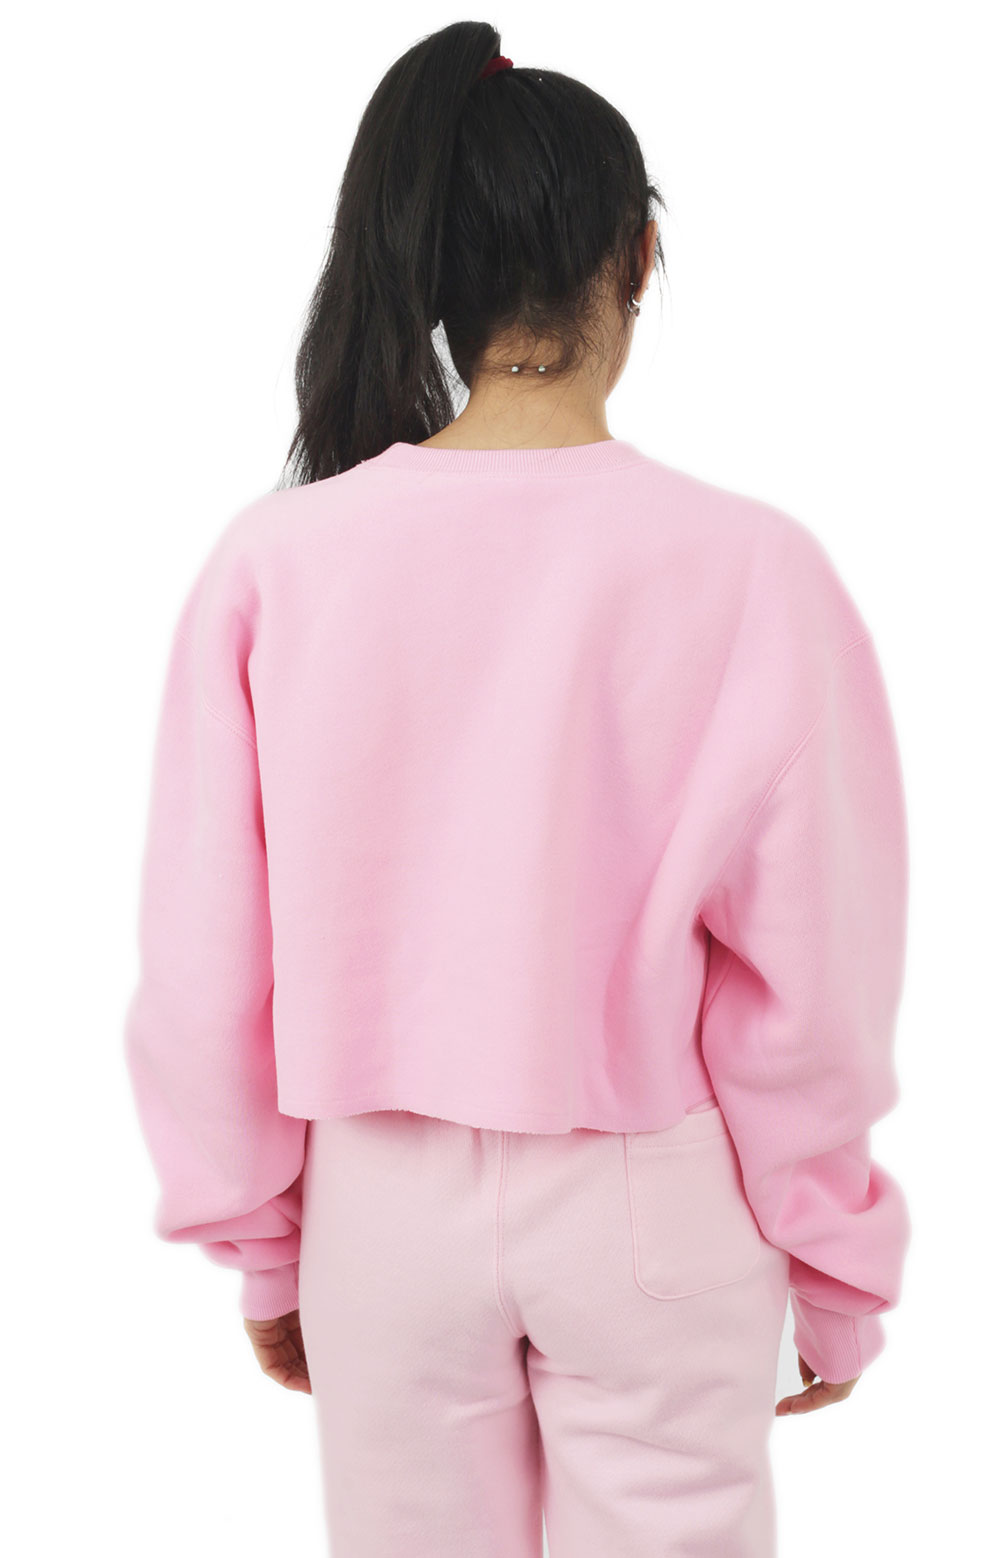 Reverse Weave Cropped Cut Off Crewneck - Pink Candy  3